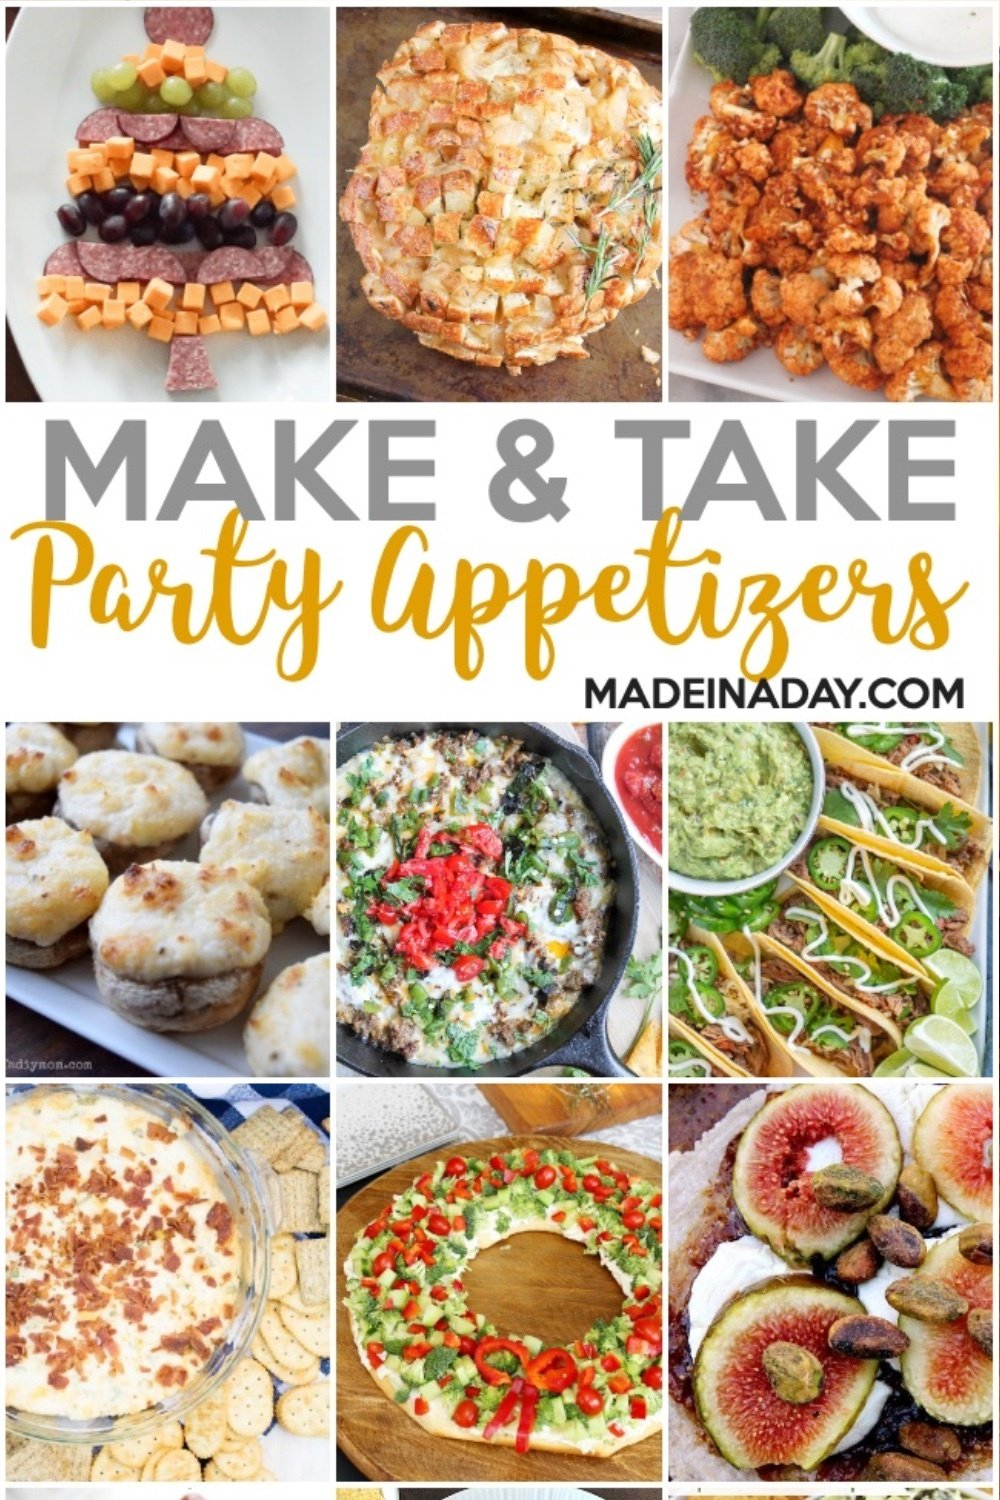 Easy Make & Take Party Appetizers